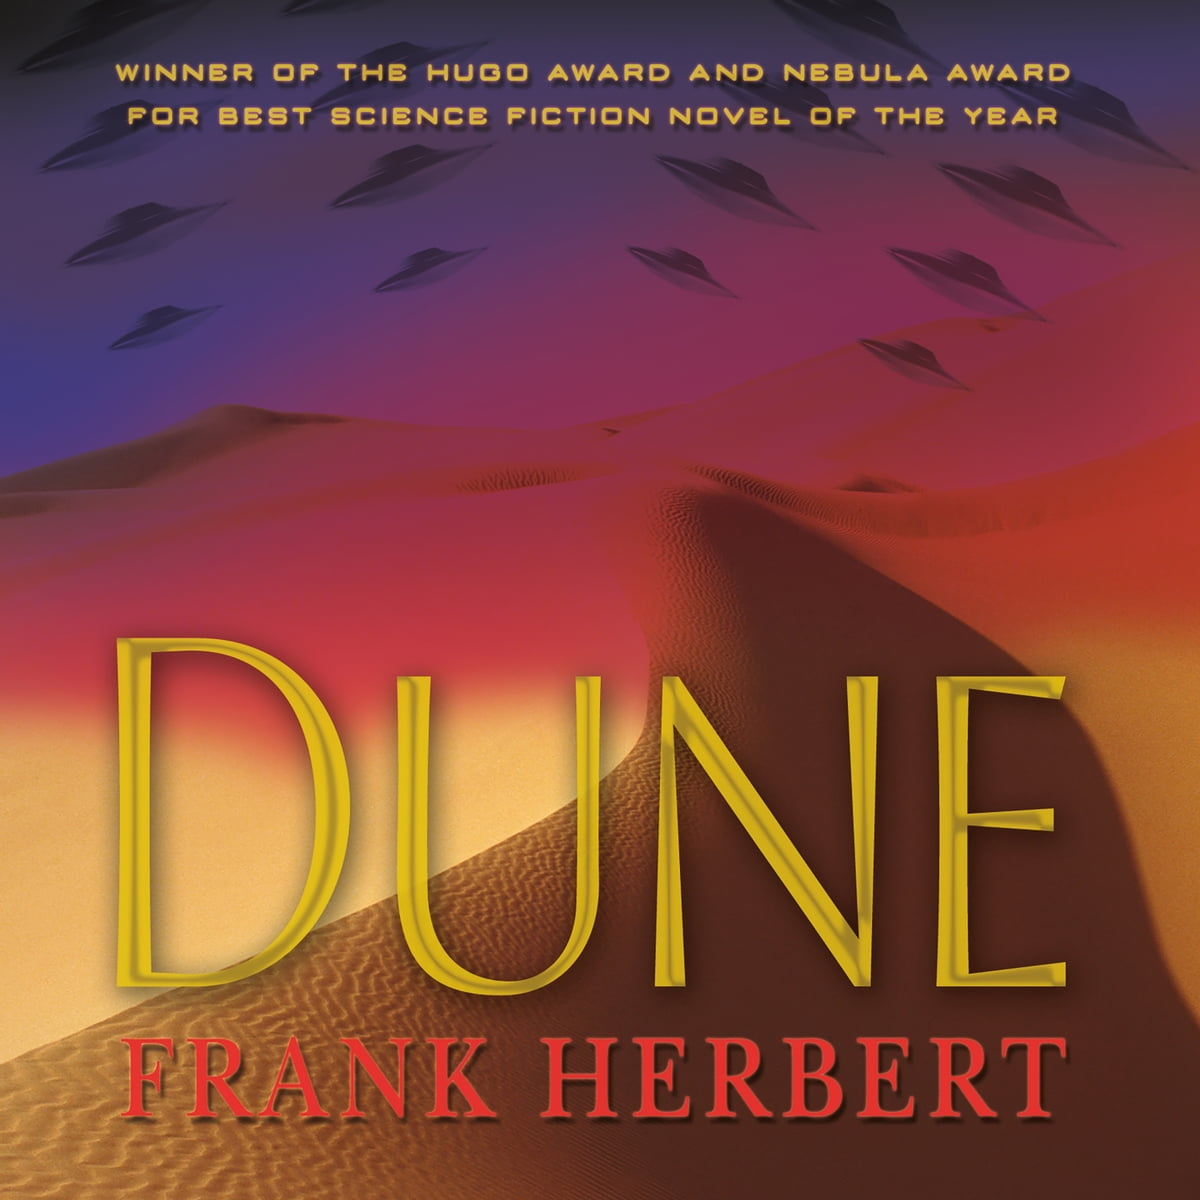 Dune(Series) · OverDrive: ebooks, audiobooks, and videos for libraries and schools